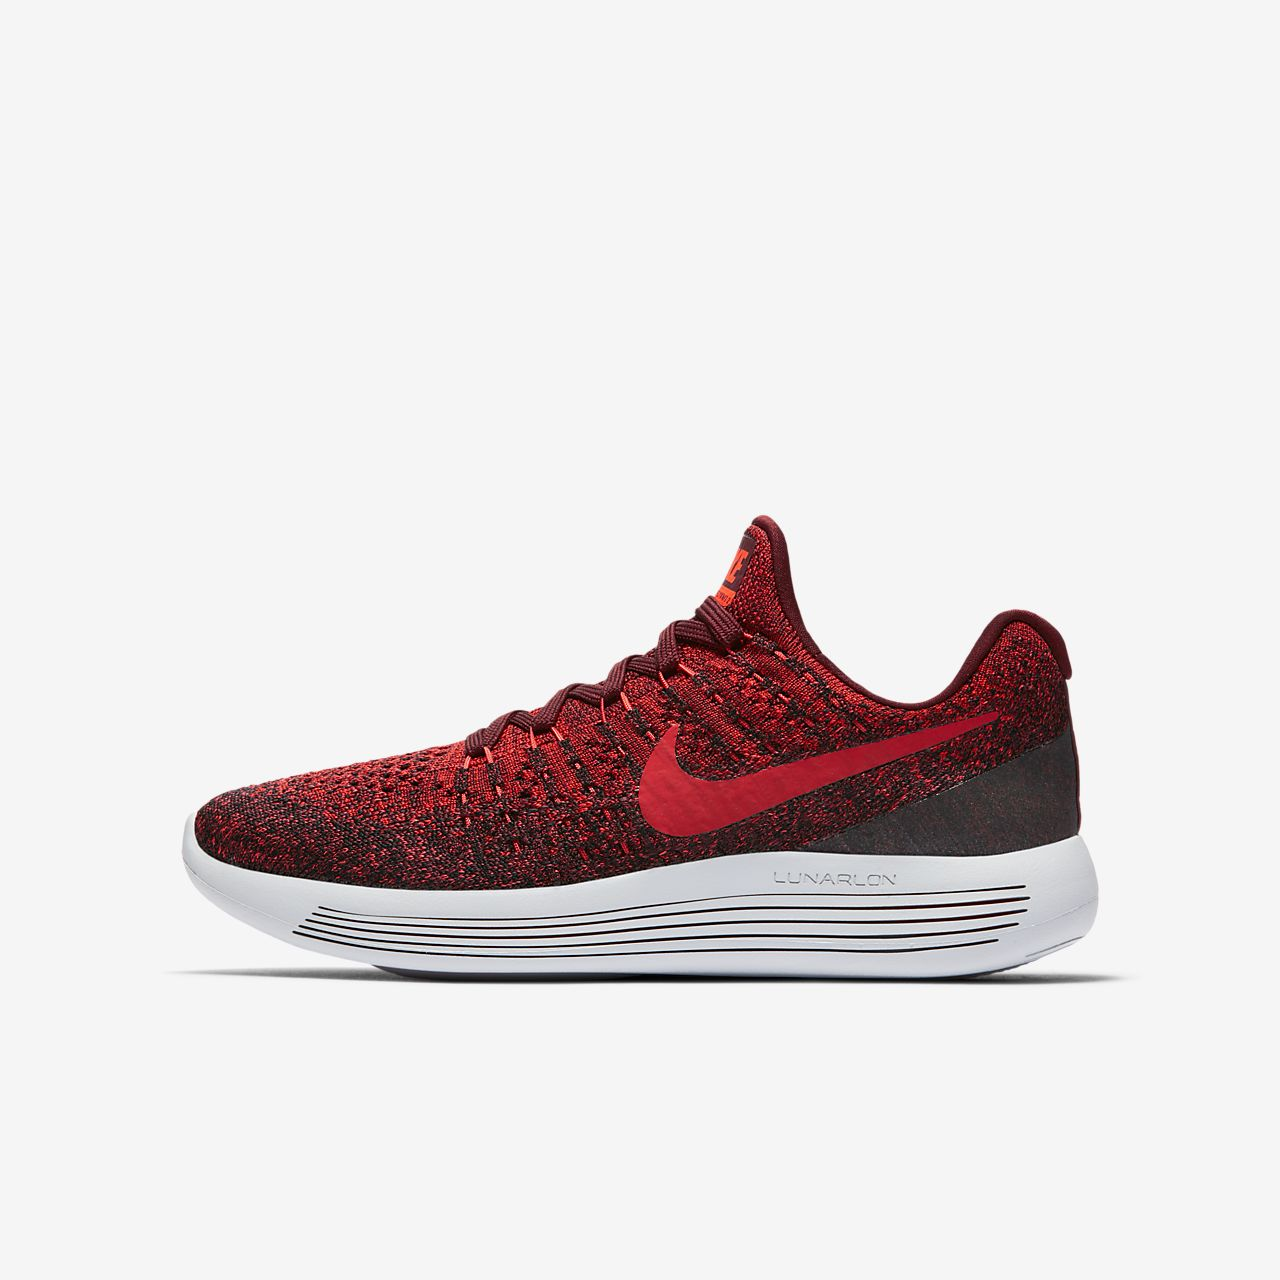 on sale 6daad 8ec82 ... coupon code for girls nike lunar 2 shoes 7fb04 395bc